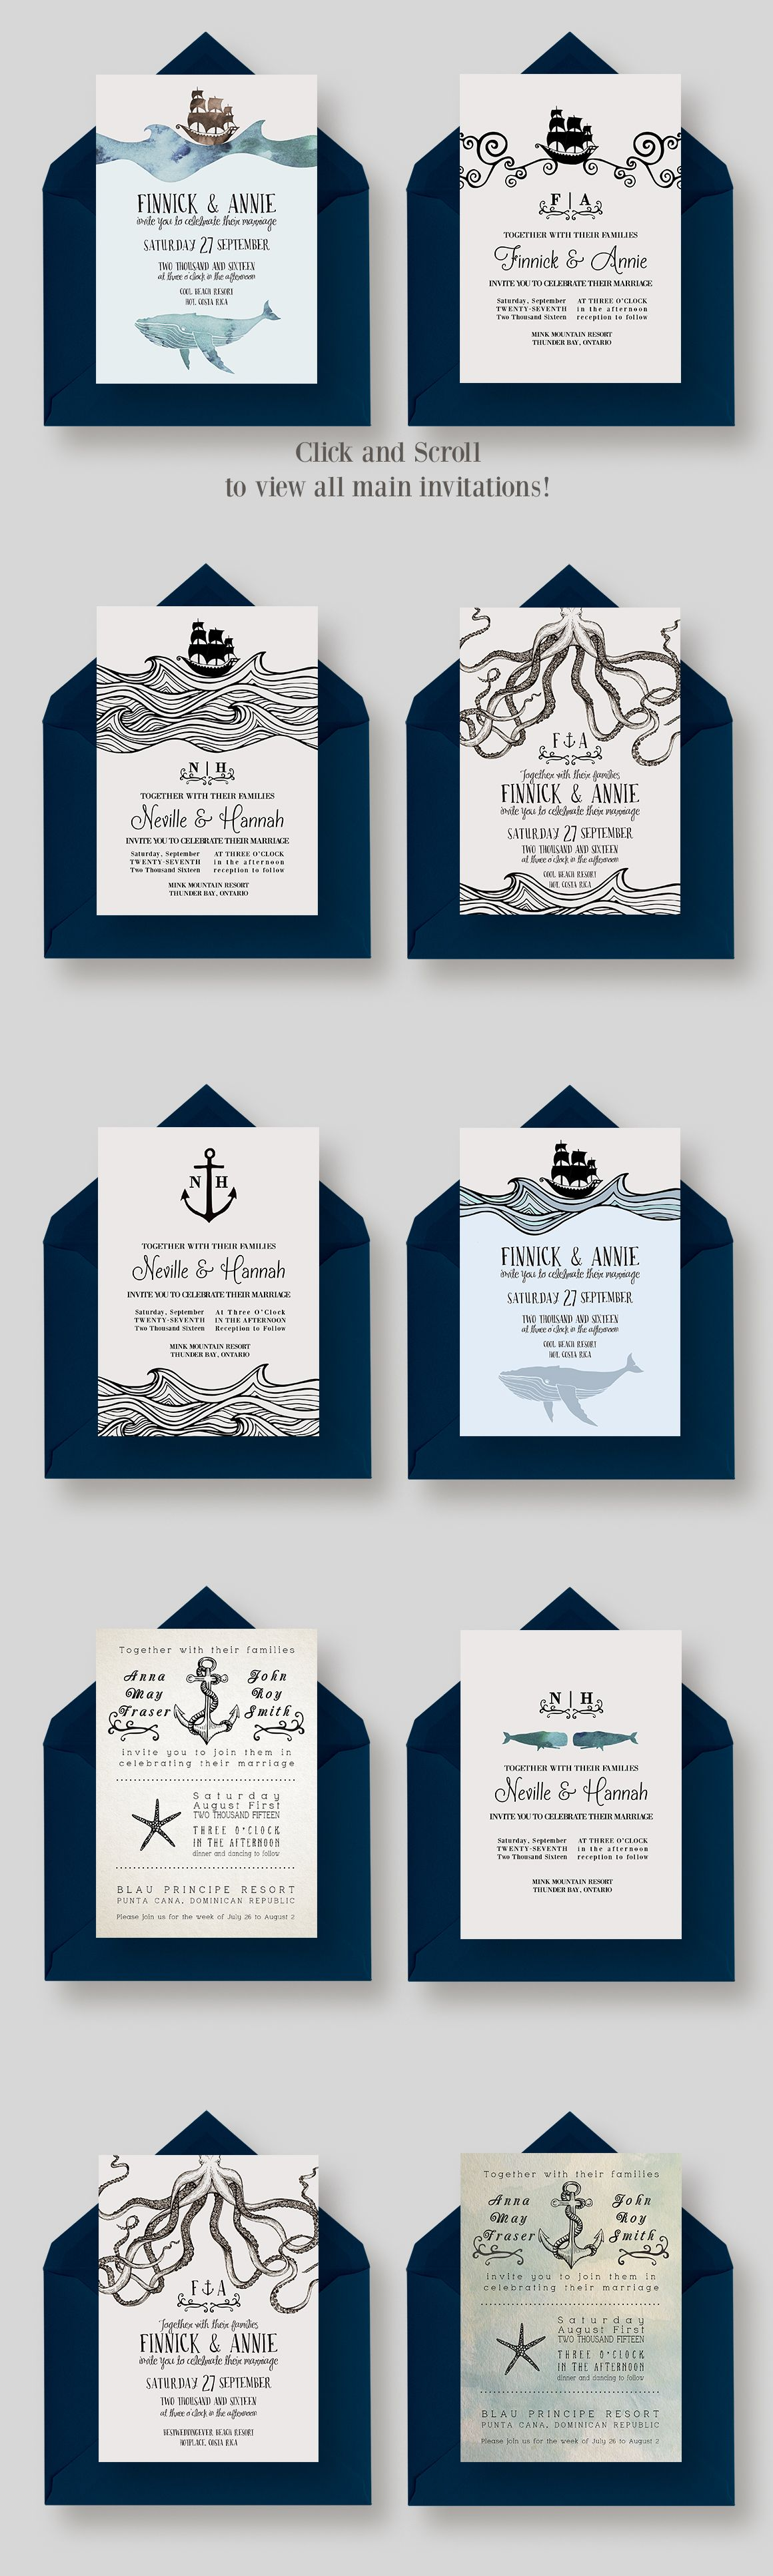 Giant Nautical Wedding Collection Nautical Wedding Nautical